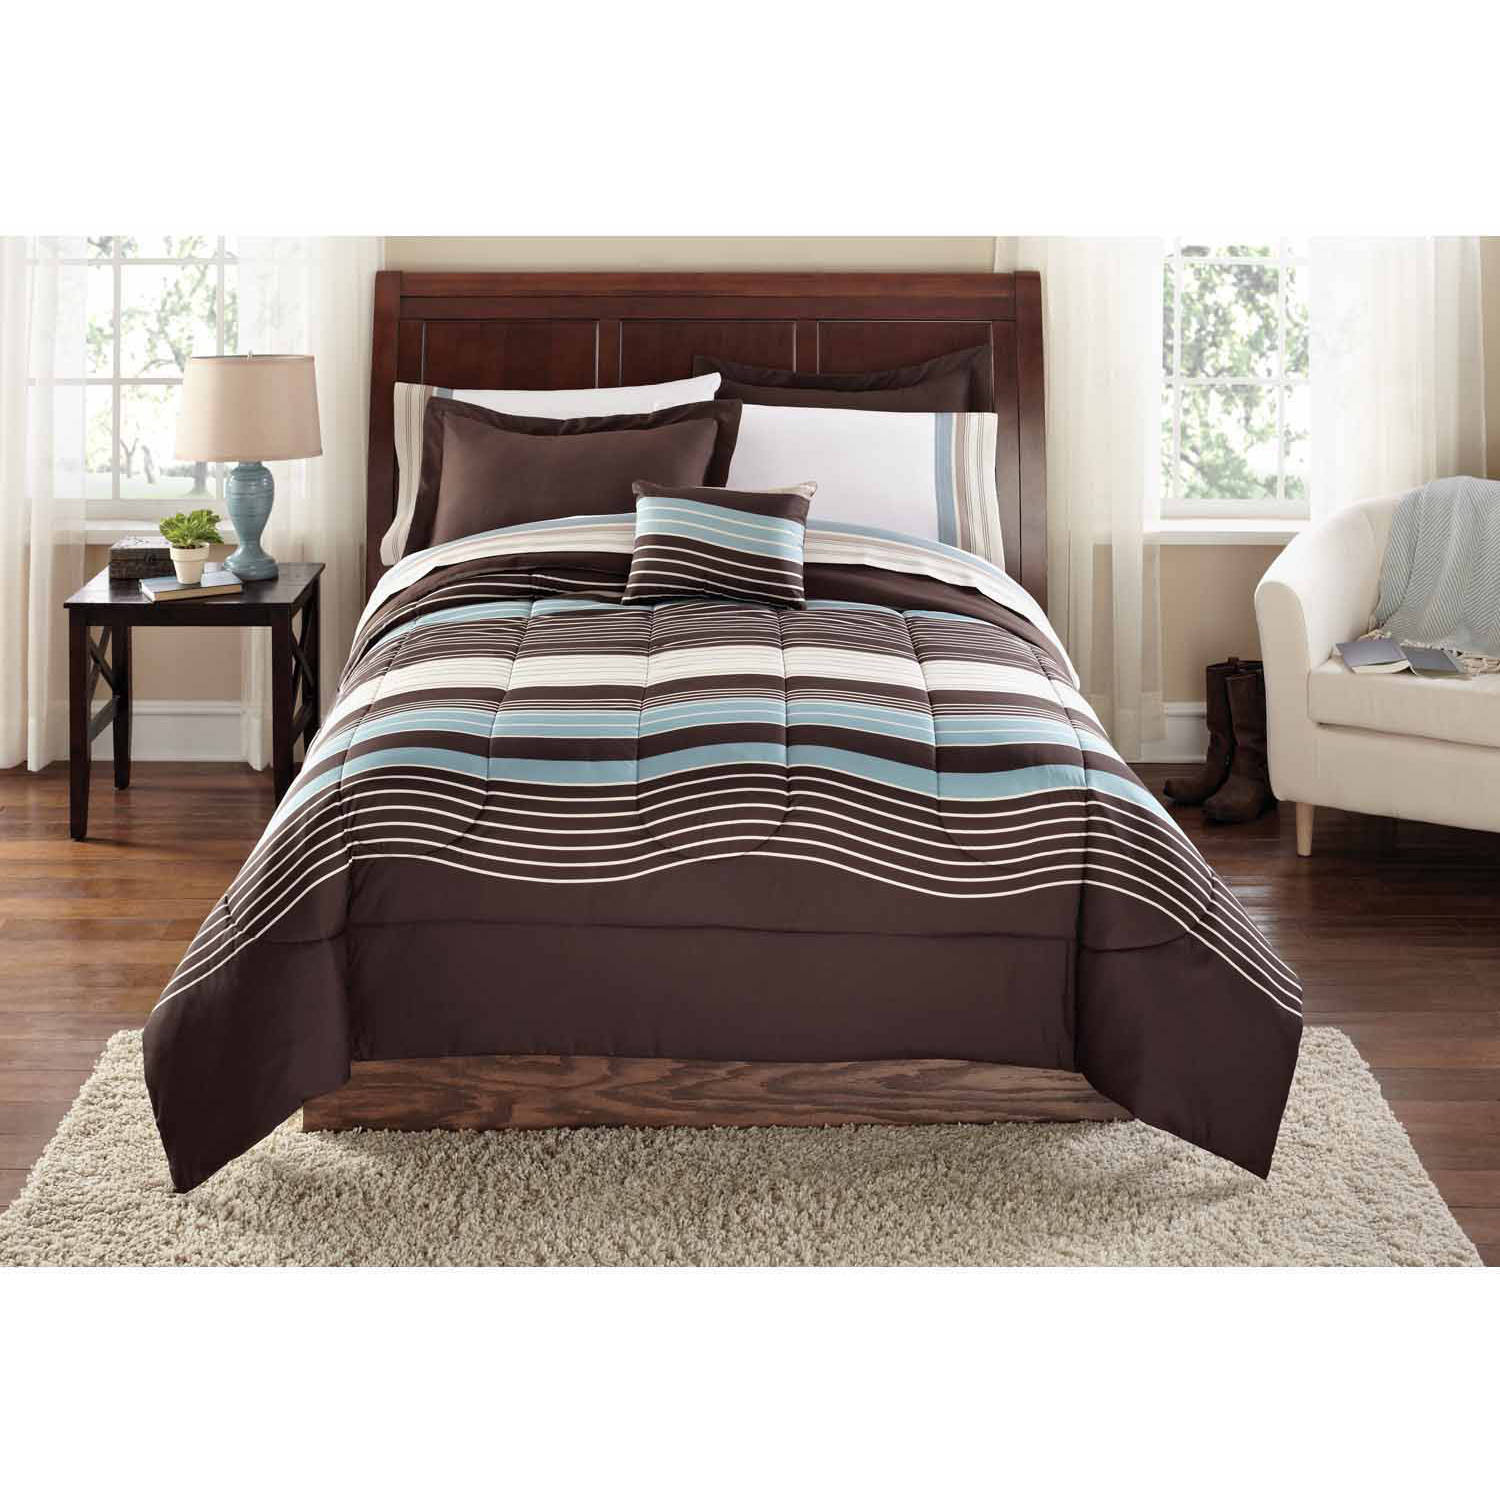 Mainstays Urban Stripe Bed In A Bag Coordinated Bedding